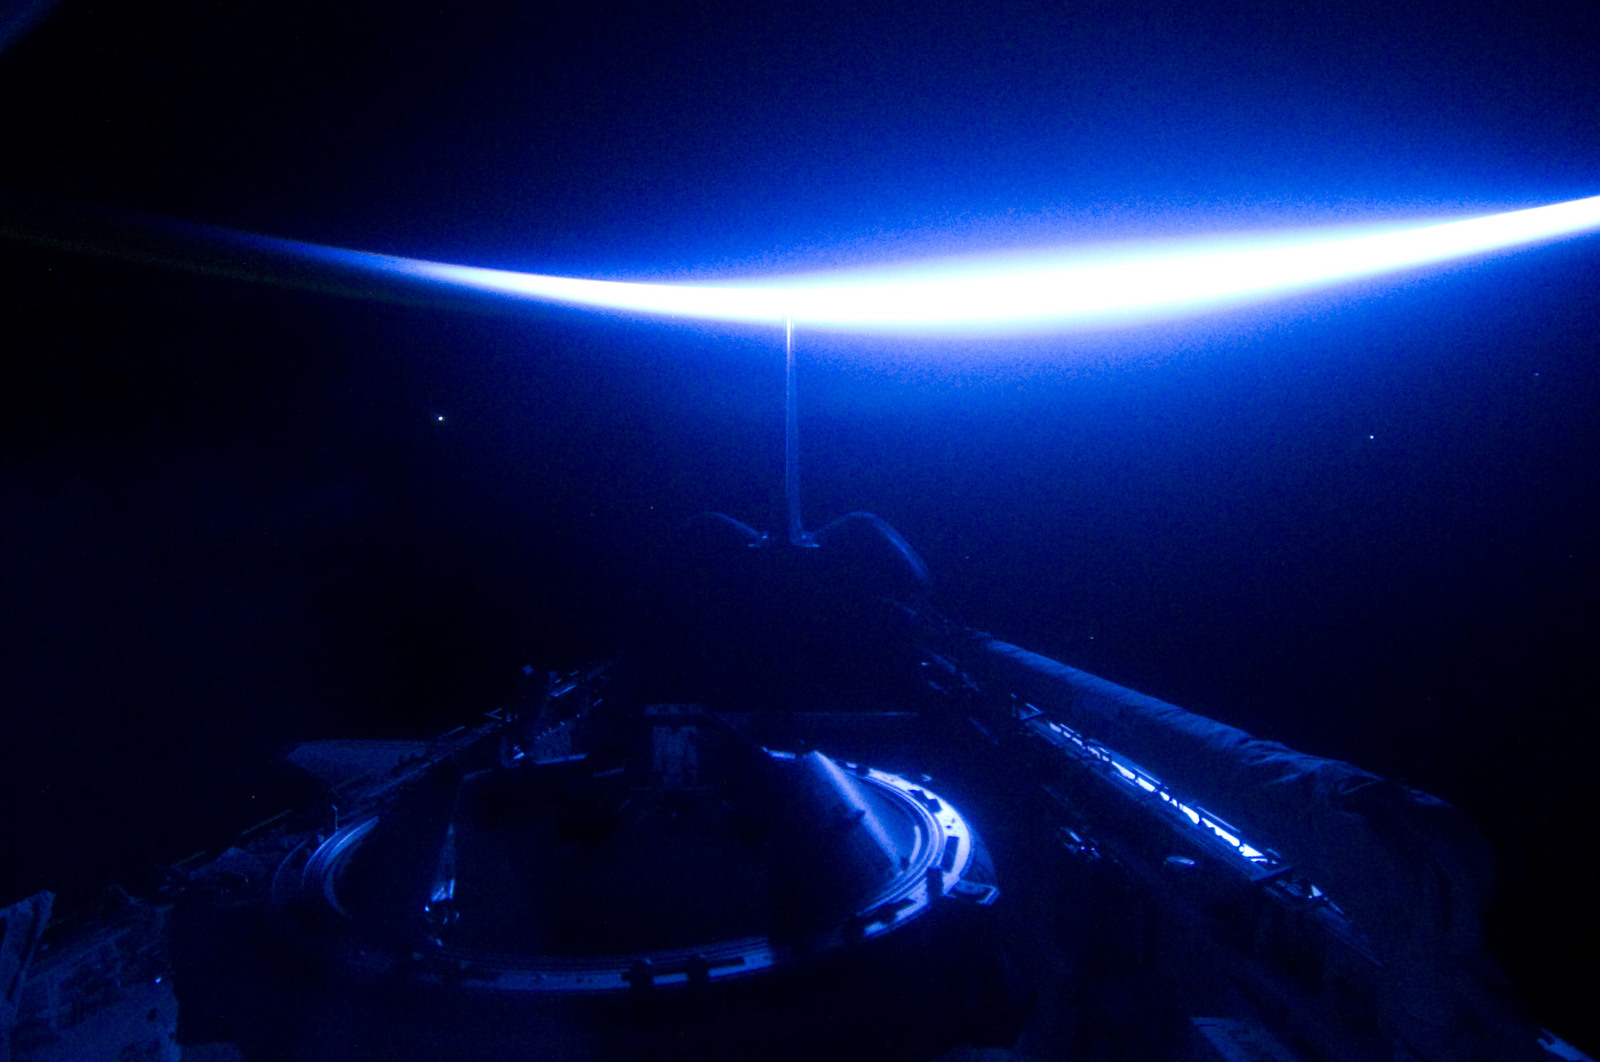 S134E012412 - STS-134 - View of Sun Rising from behind Earth's Horizon